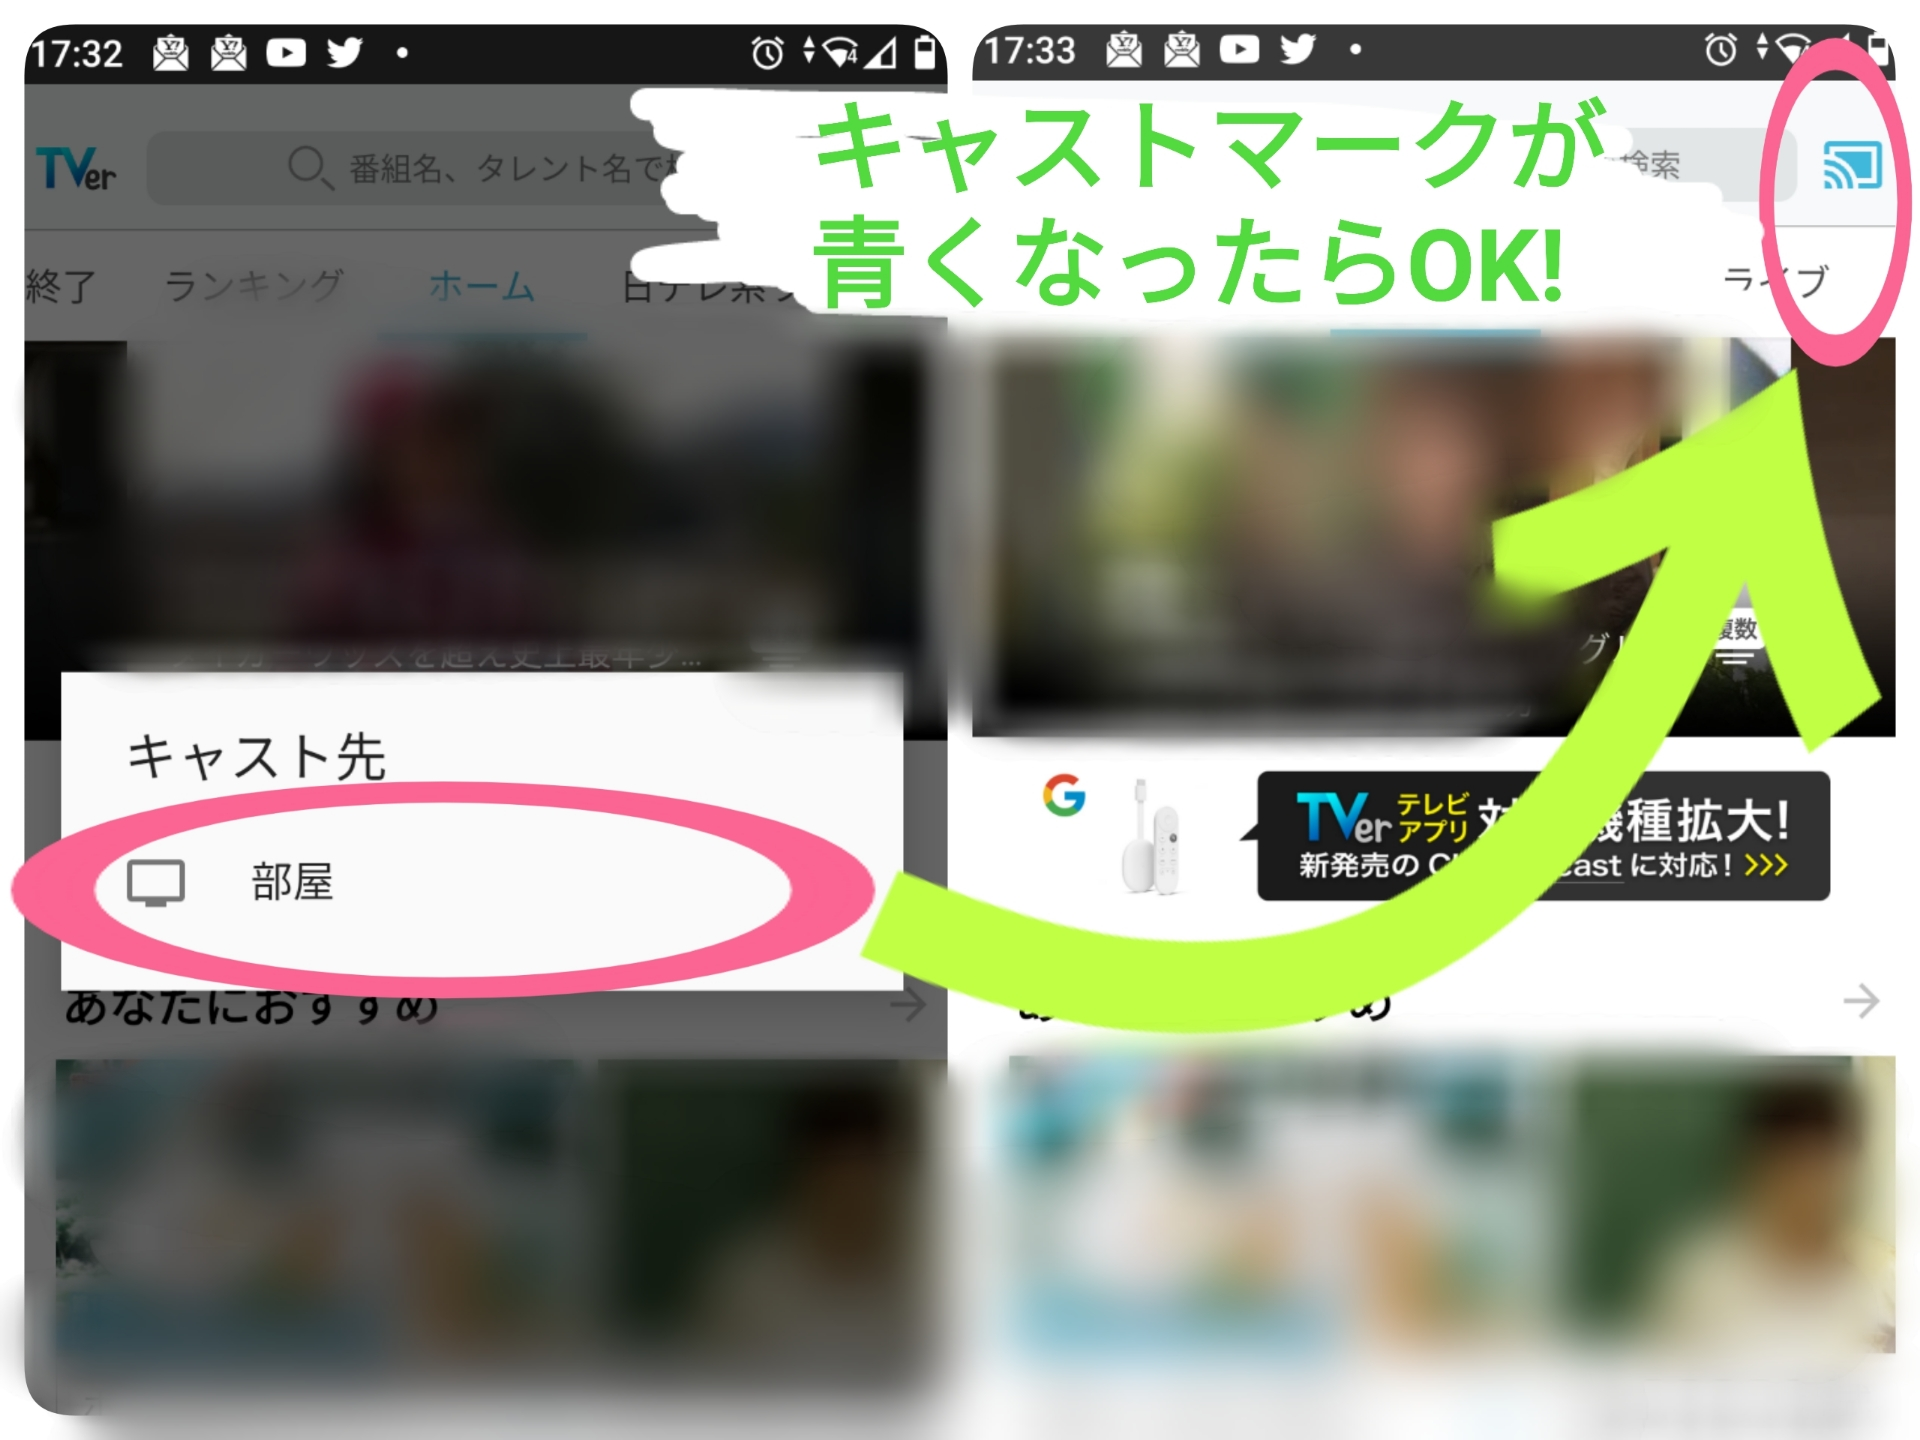 TVer Android キャスト先 選択 タップ マーク 青色 完了